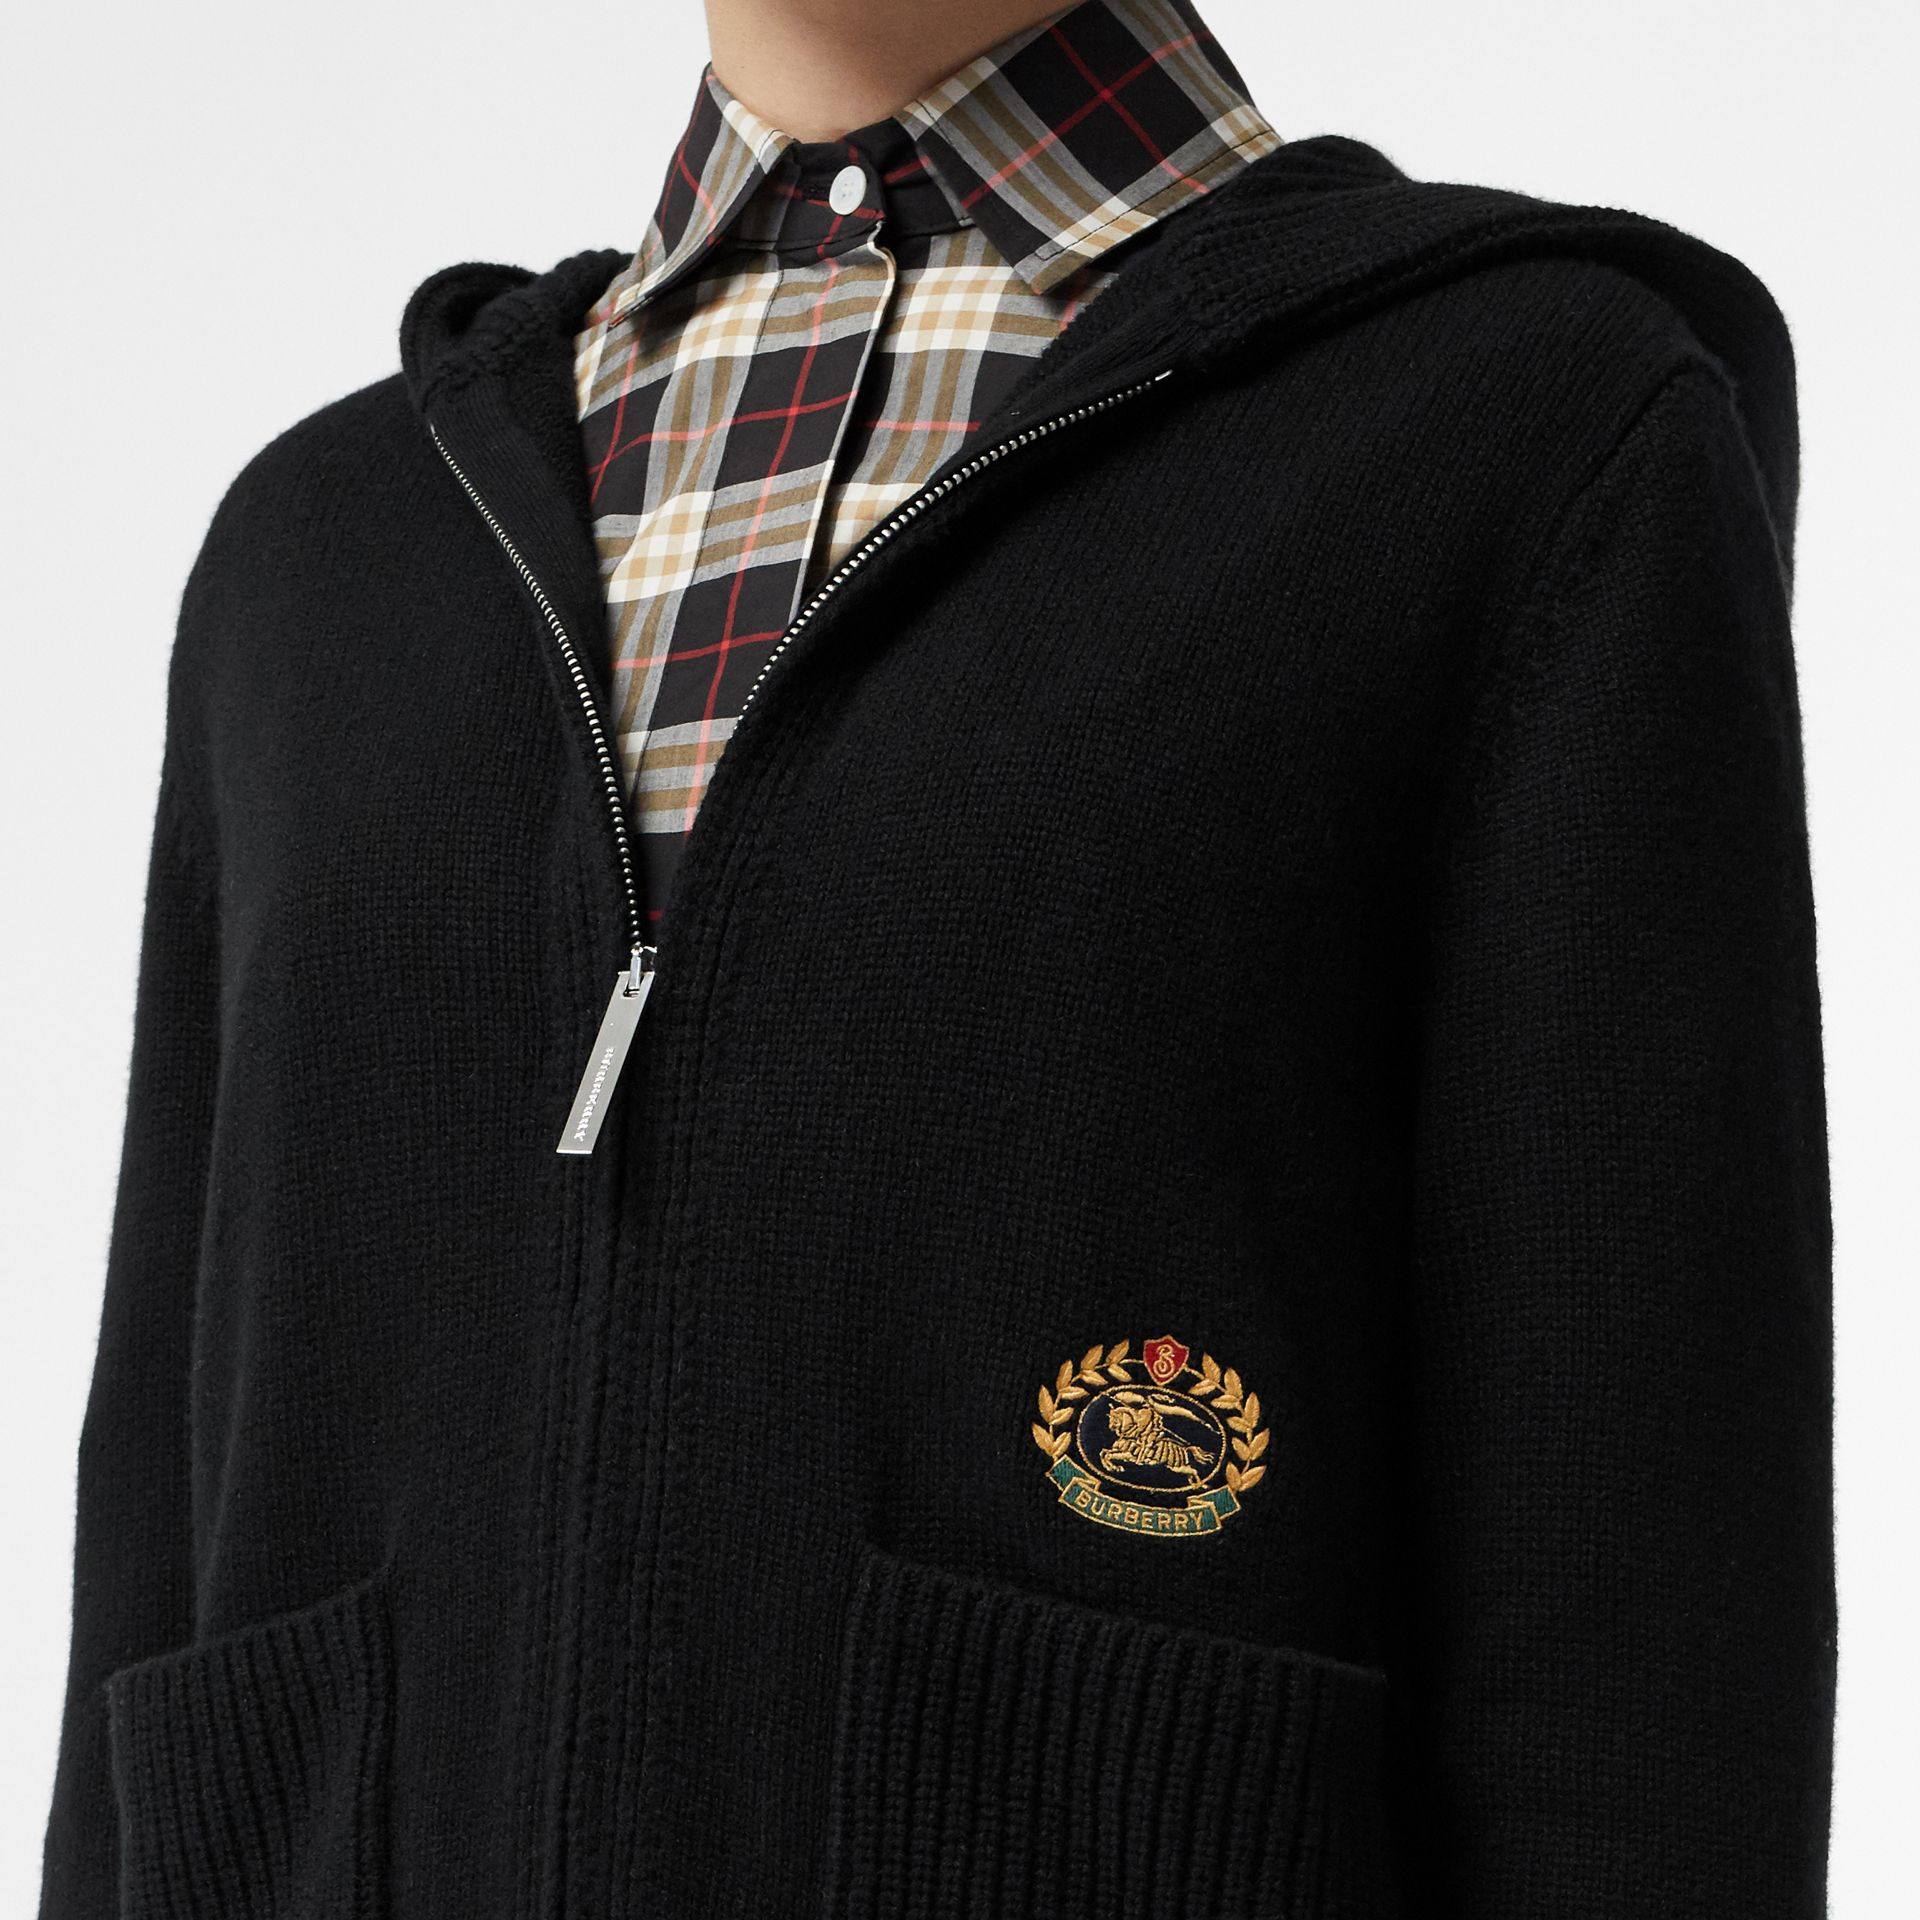 Embroidered Crest Cashmere Hooded Top in Black - Women | Burberry United Kingdom - gallery image 1